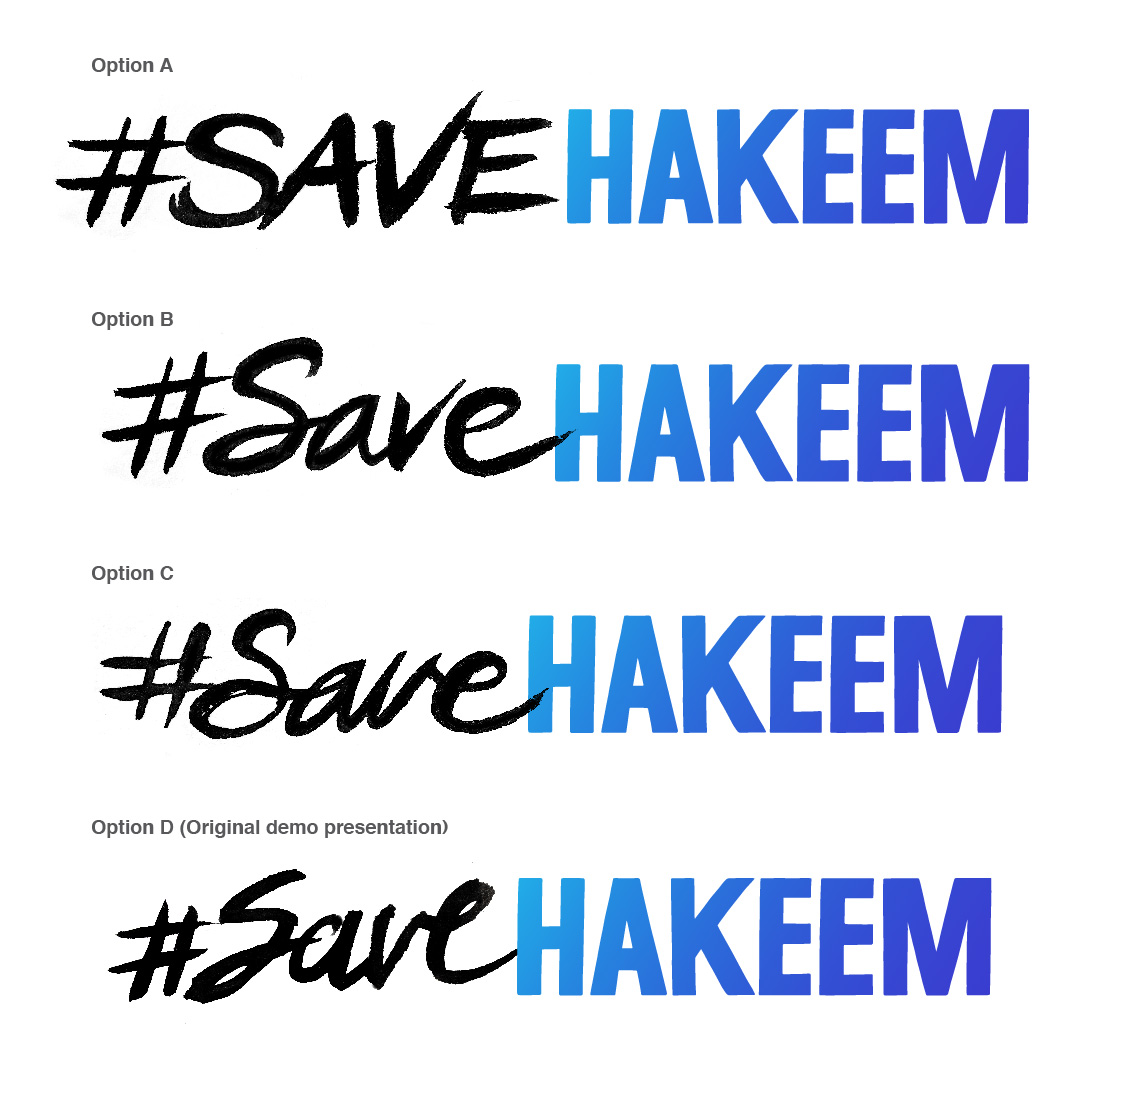 Hakeem_Script-Save-Options-Feb10.jpg